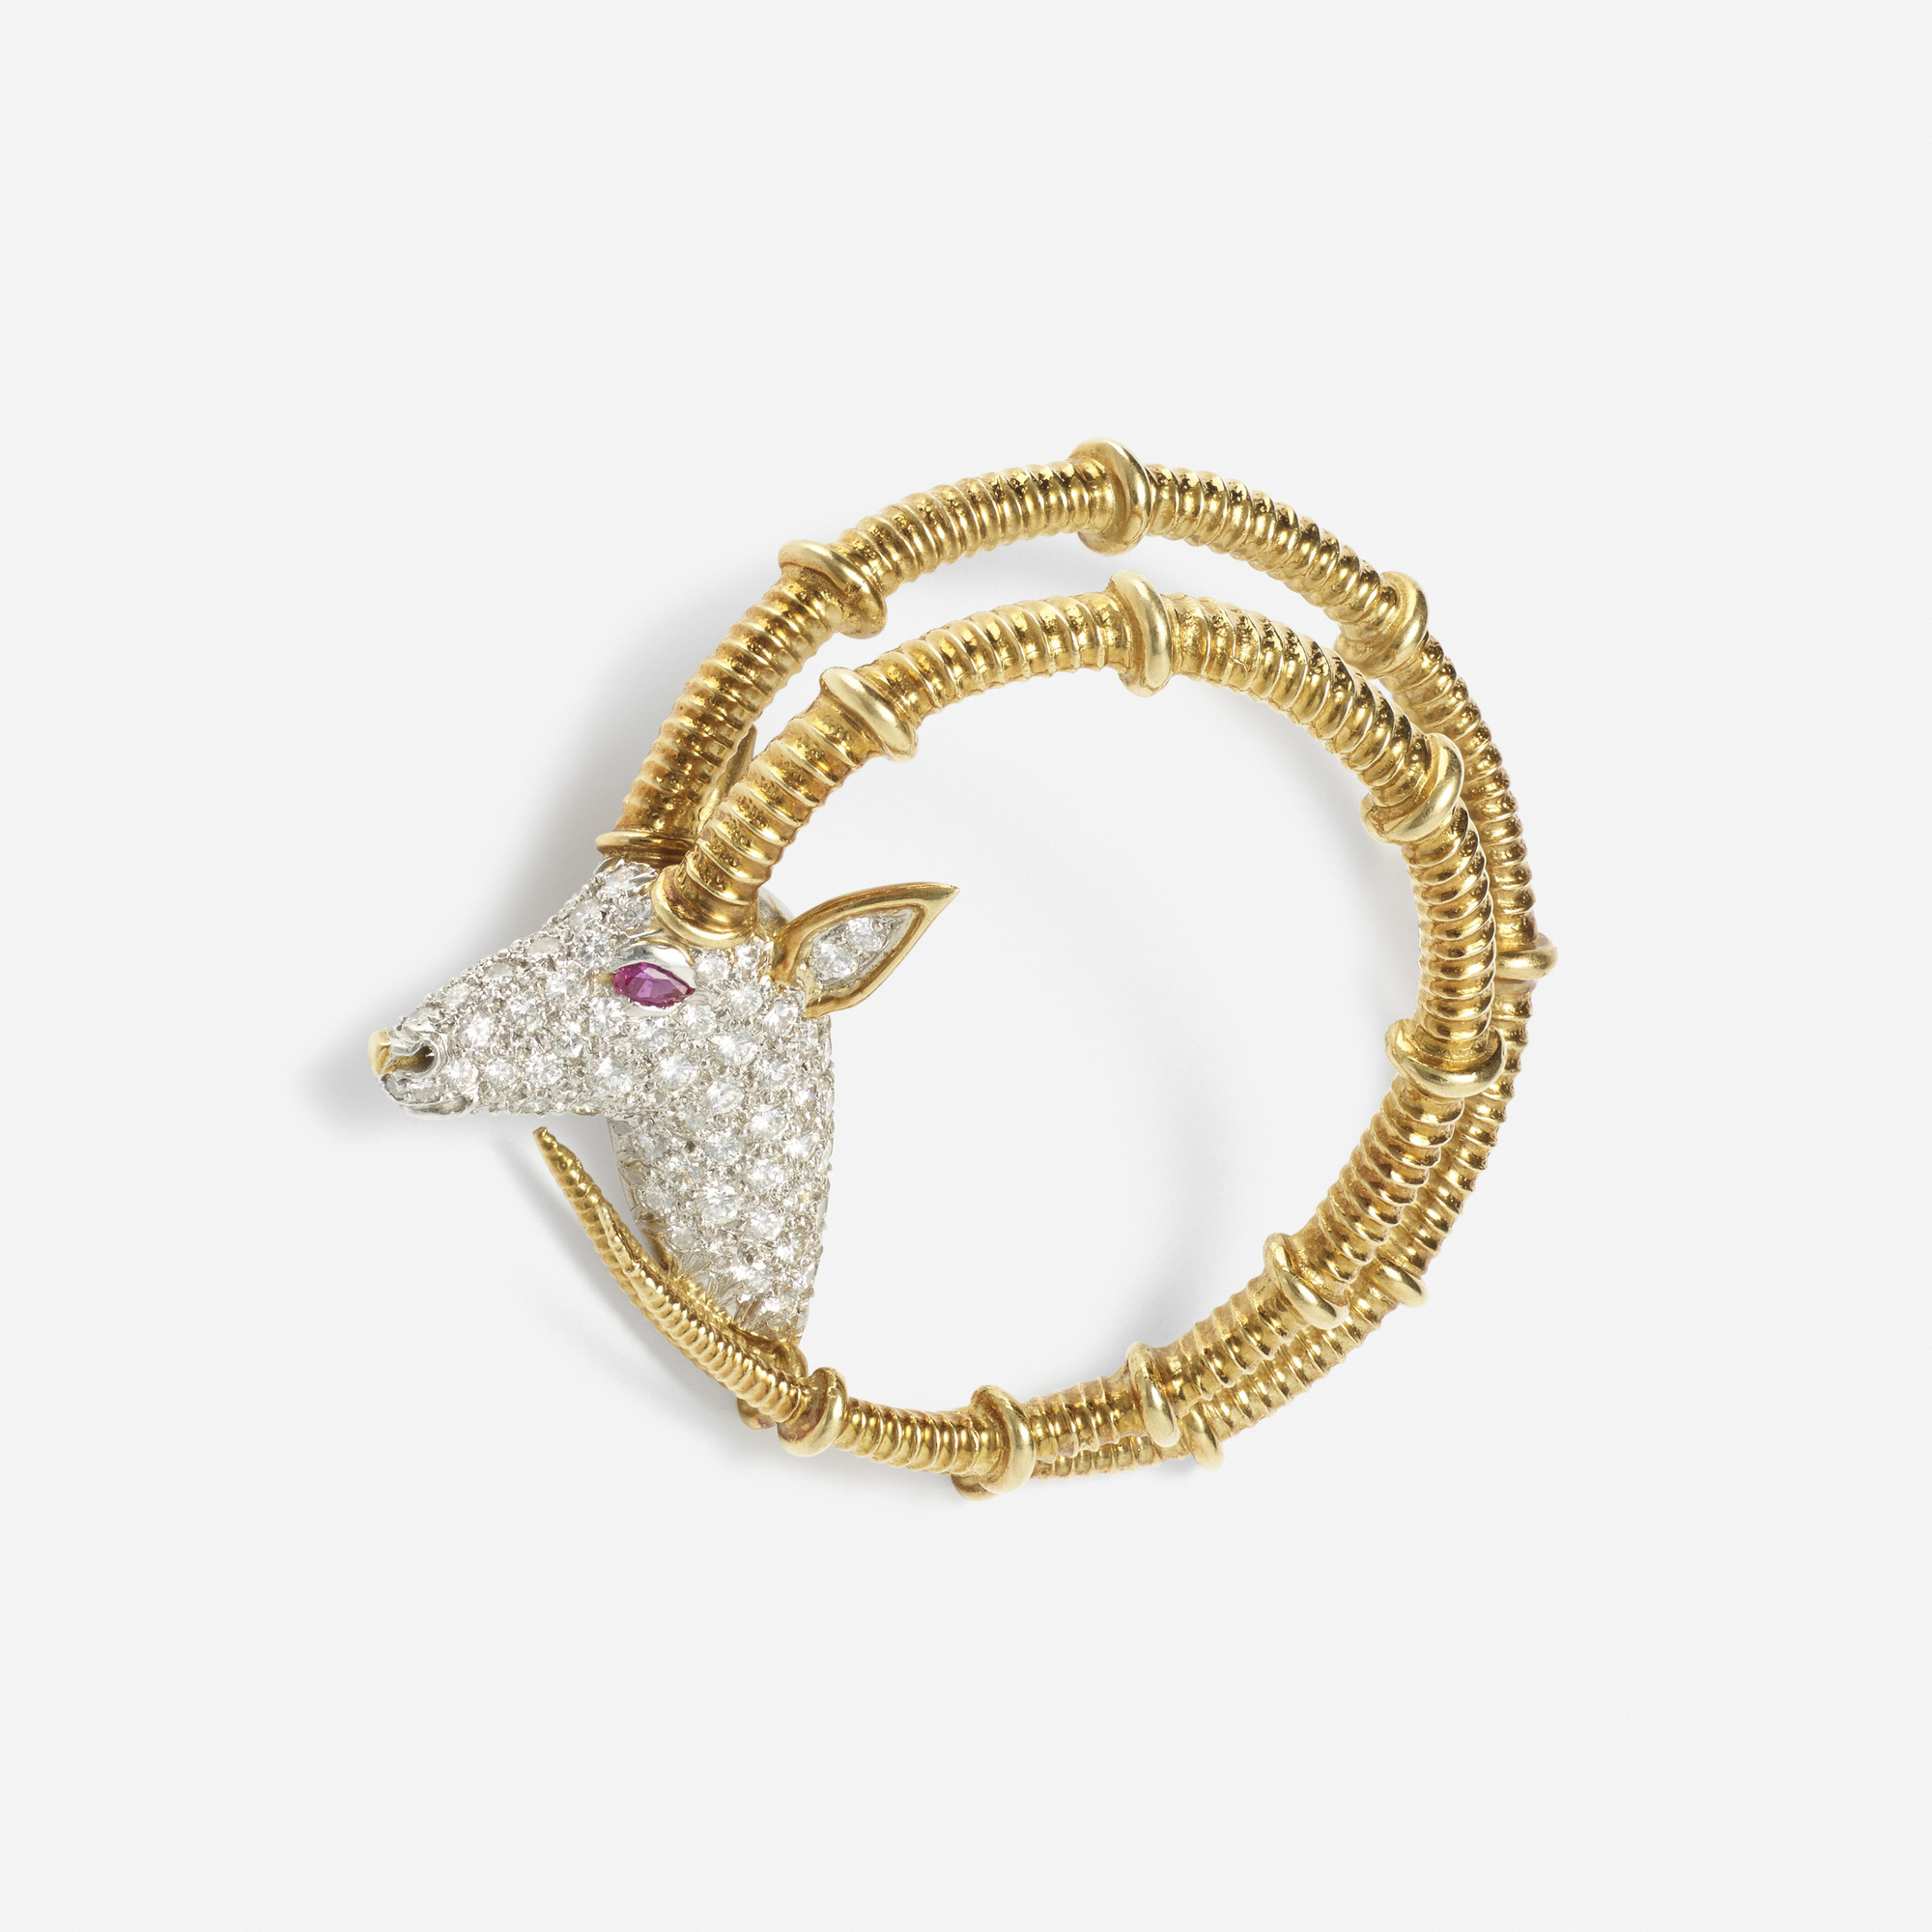 251: Jean Schlumberger / A gold, platinum, diamond and ruby brooch (1 of 1)